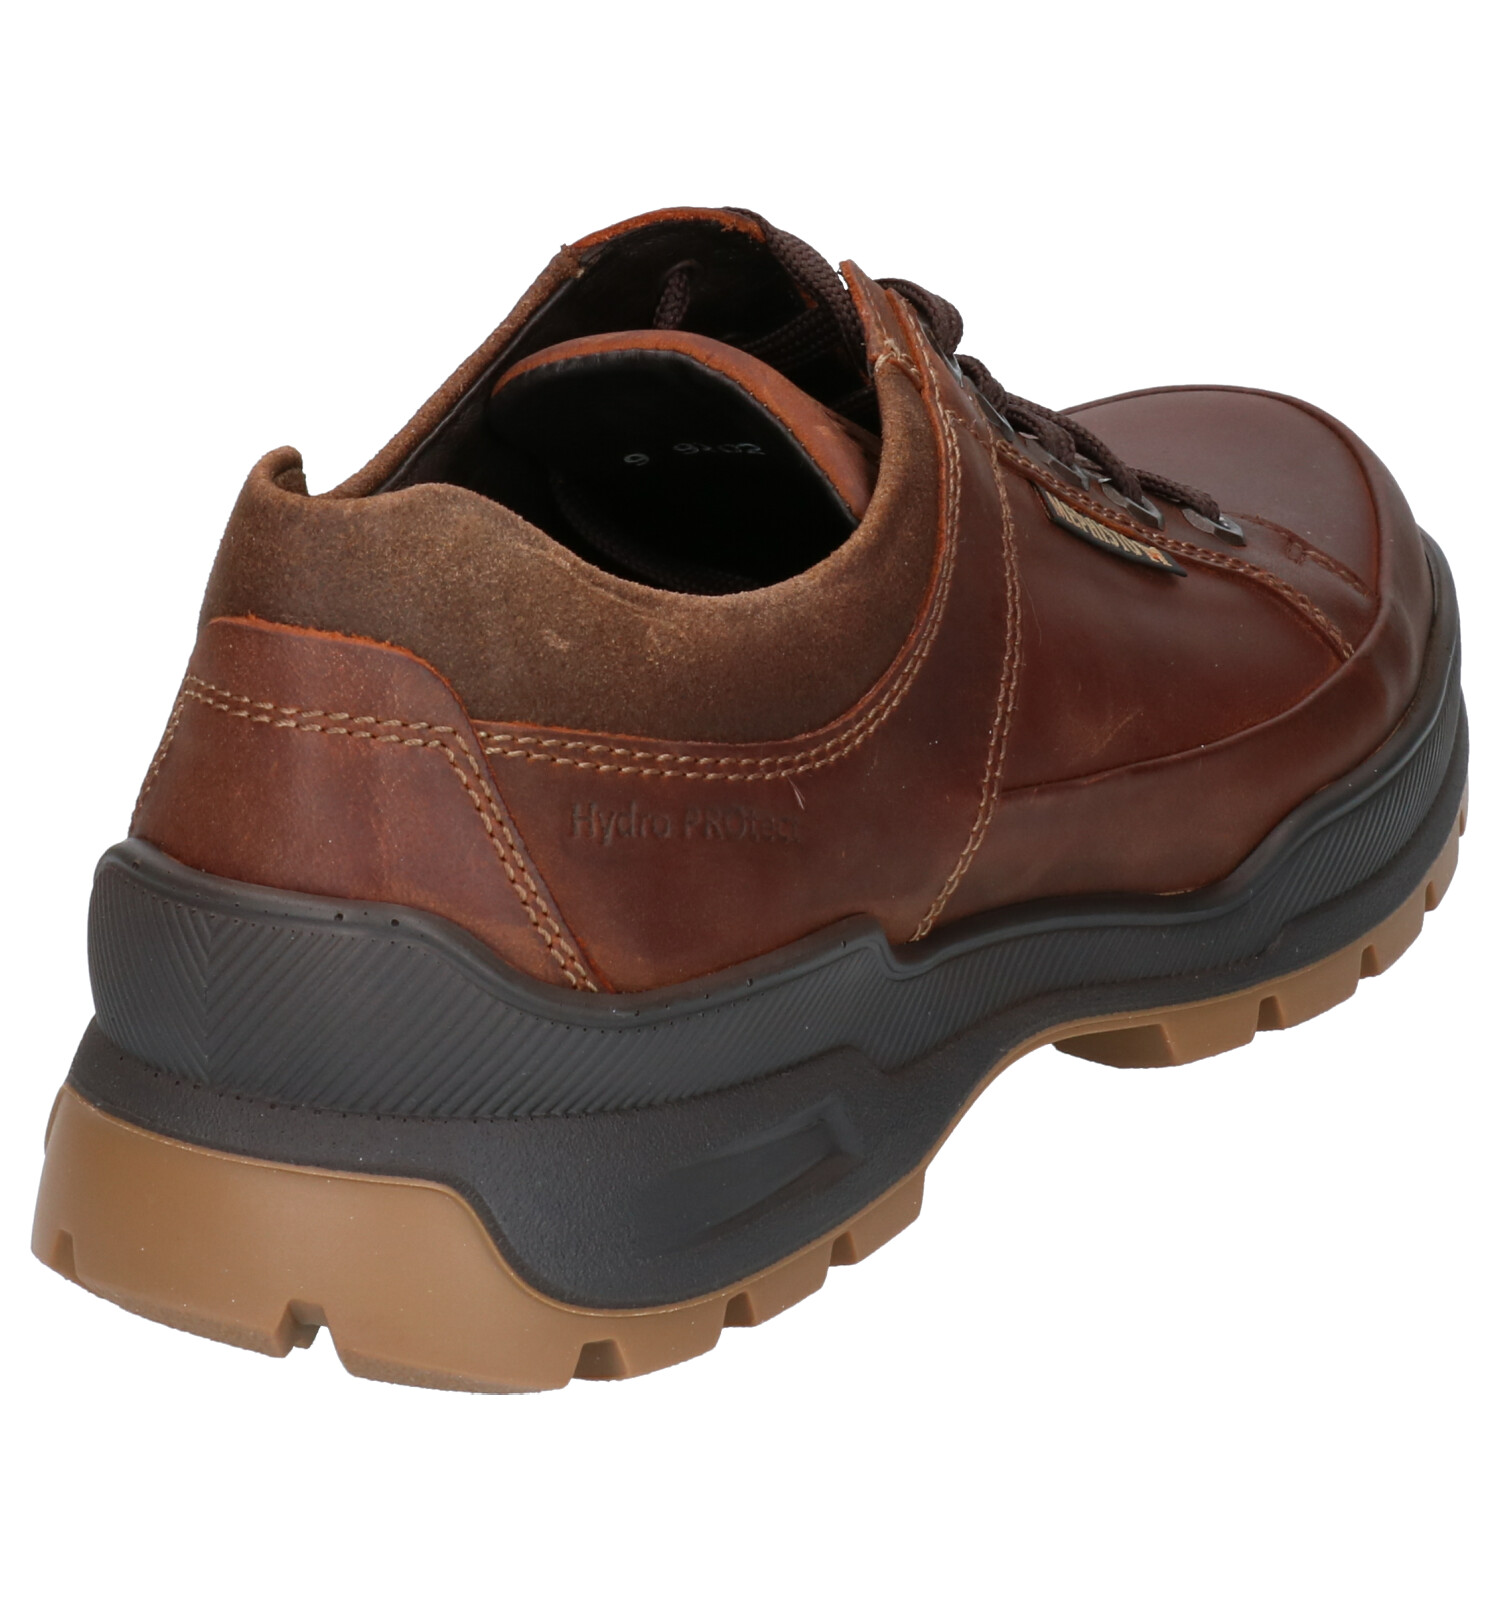 Iacomo Grizzly Mephisto Grizzly Cognac Veterschoenen Veterschoenen Mephisto Iacomo Cognac l5J3ucT1FK